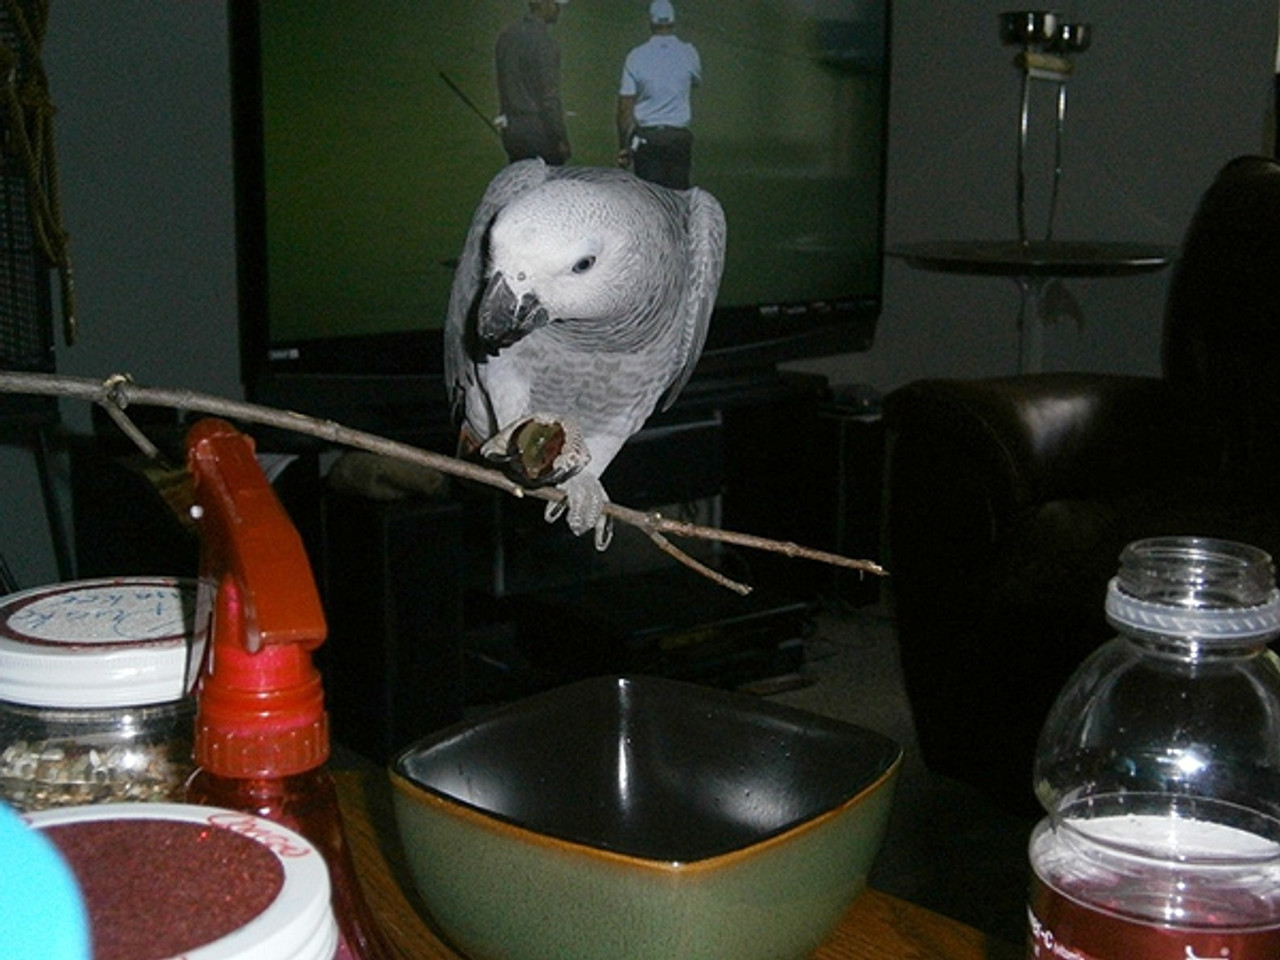 One more seat please - the bird that like to eat